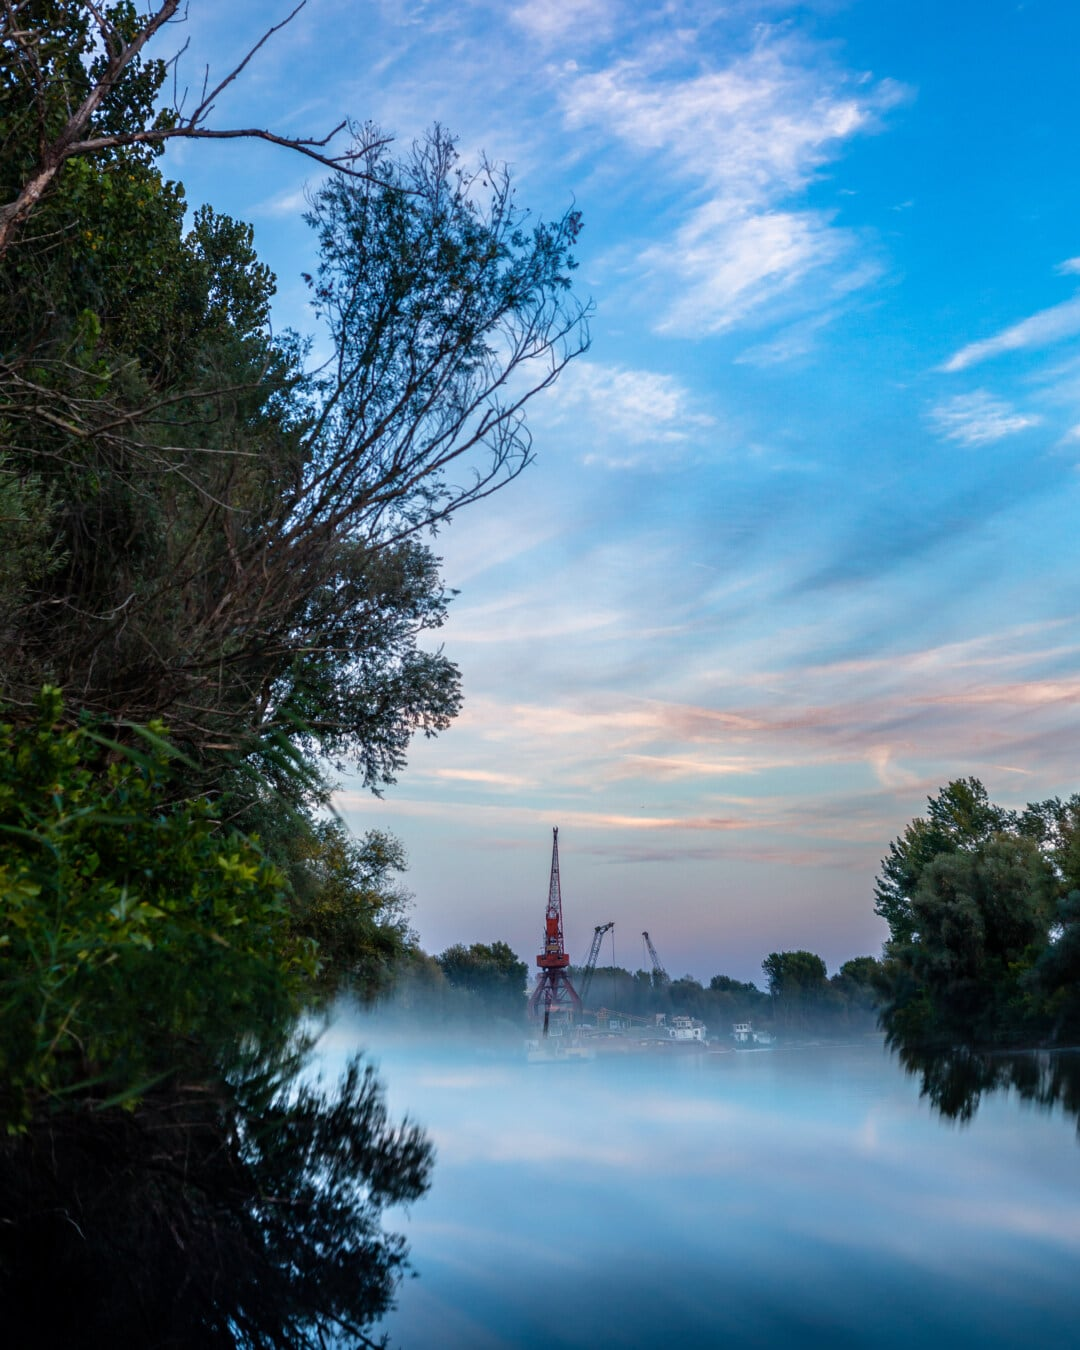 idyllic, foggy, lakeside, harbour, industrial, machinery, tree, shore, water, landscape